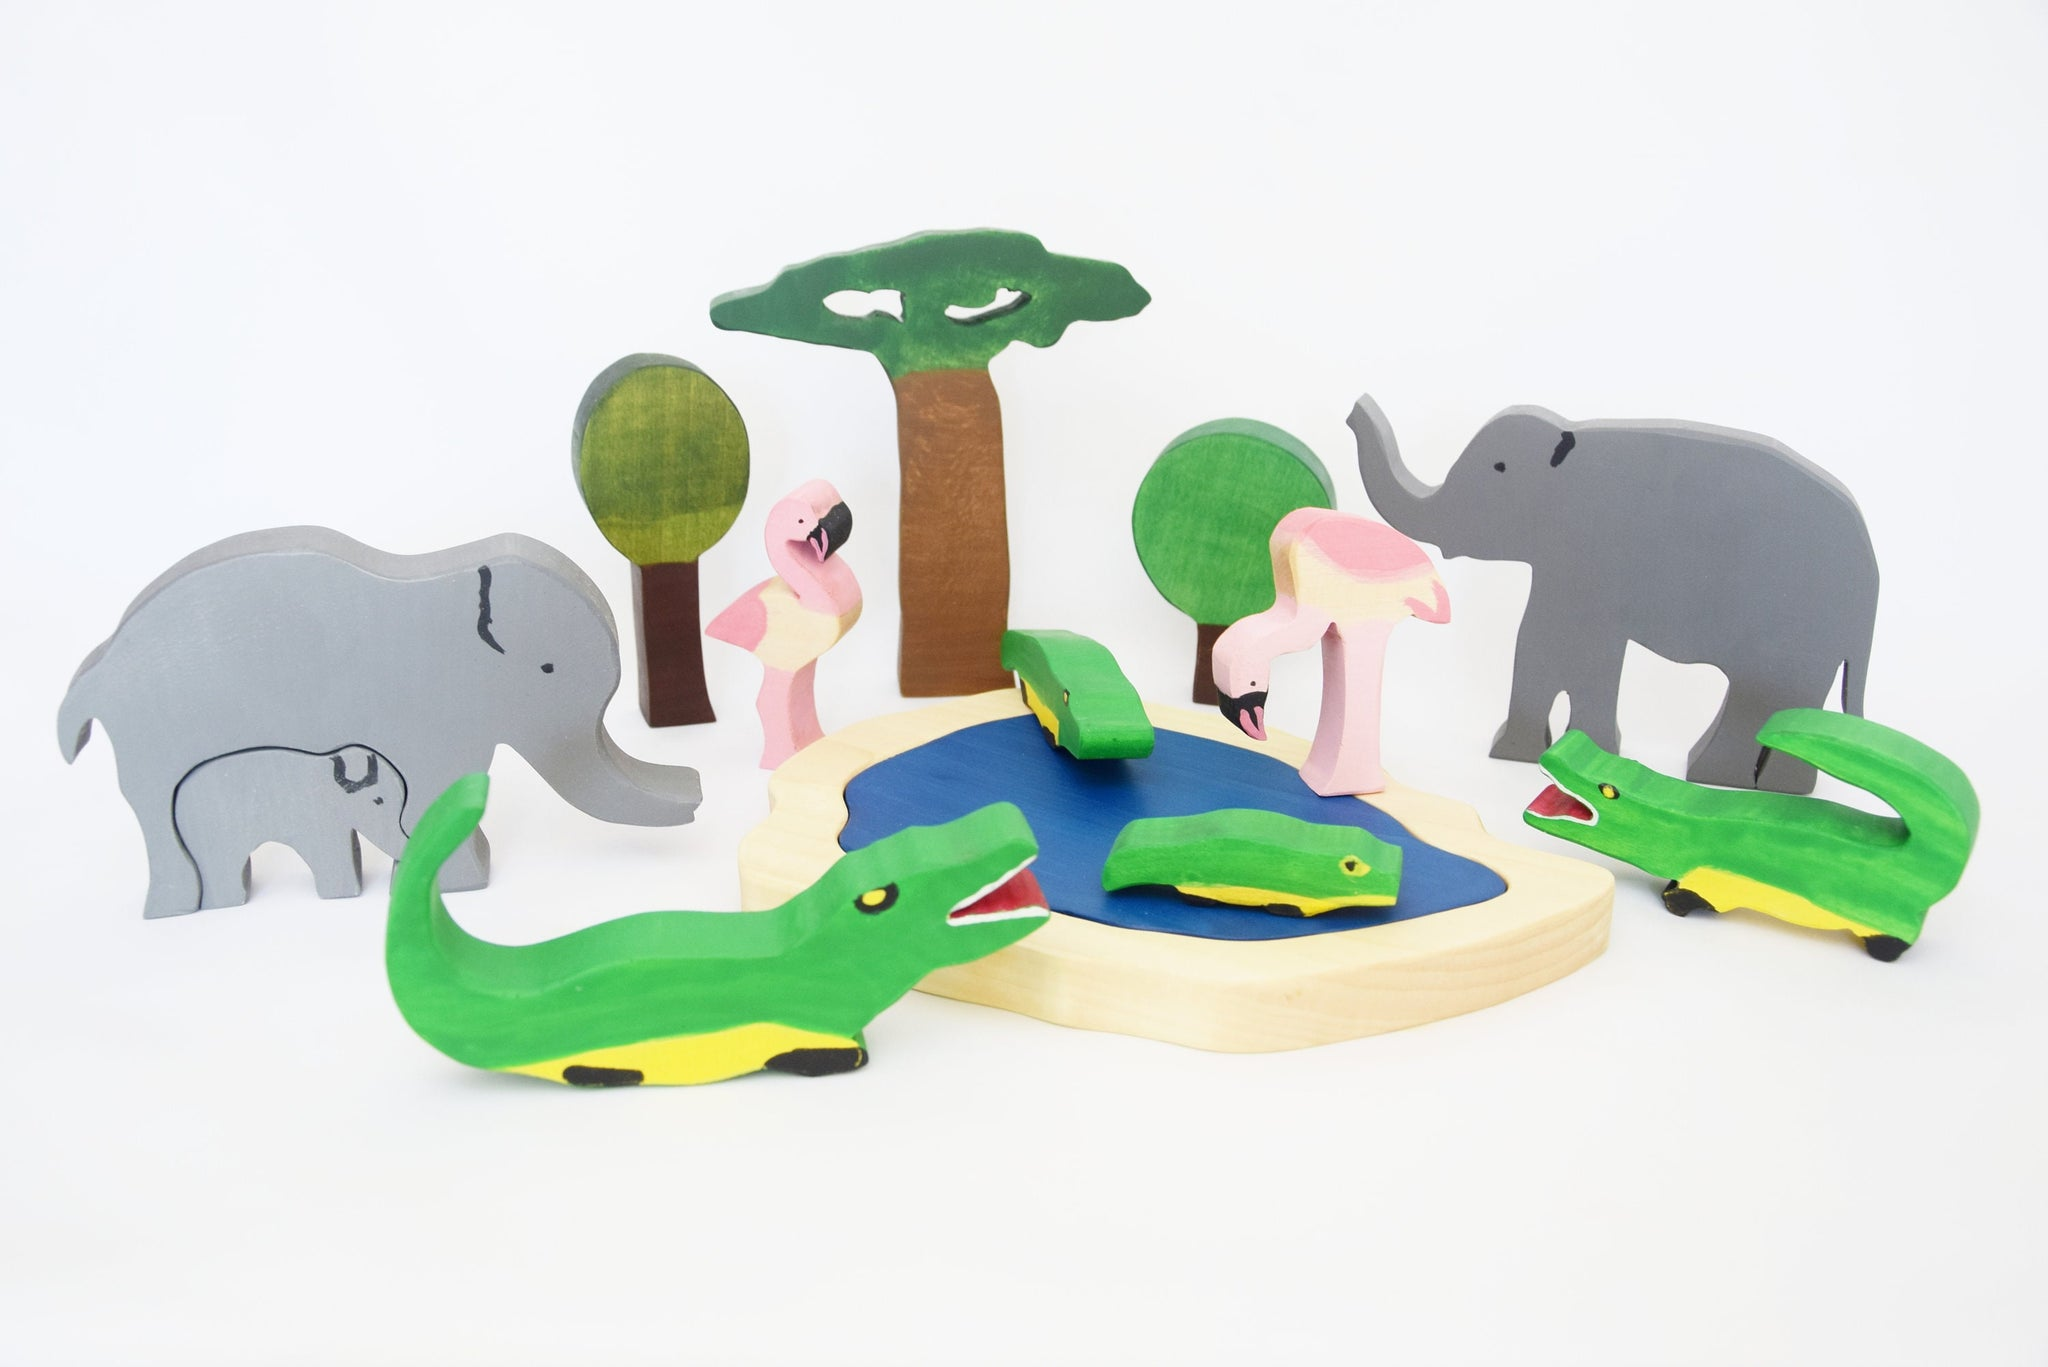 Exotic african animals wooden toy set, waldorf wooden toy set, imaginative play, invitation to play, christmas gift, waldorf wooden toy set